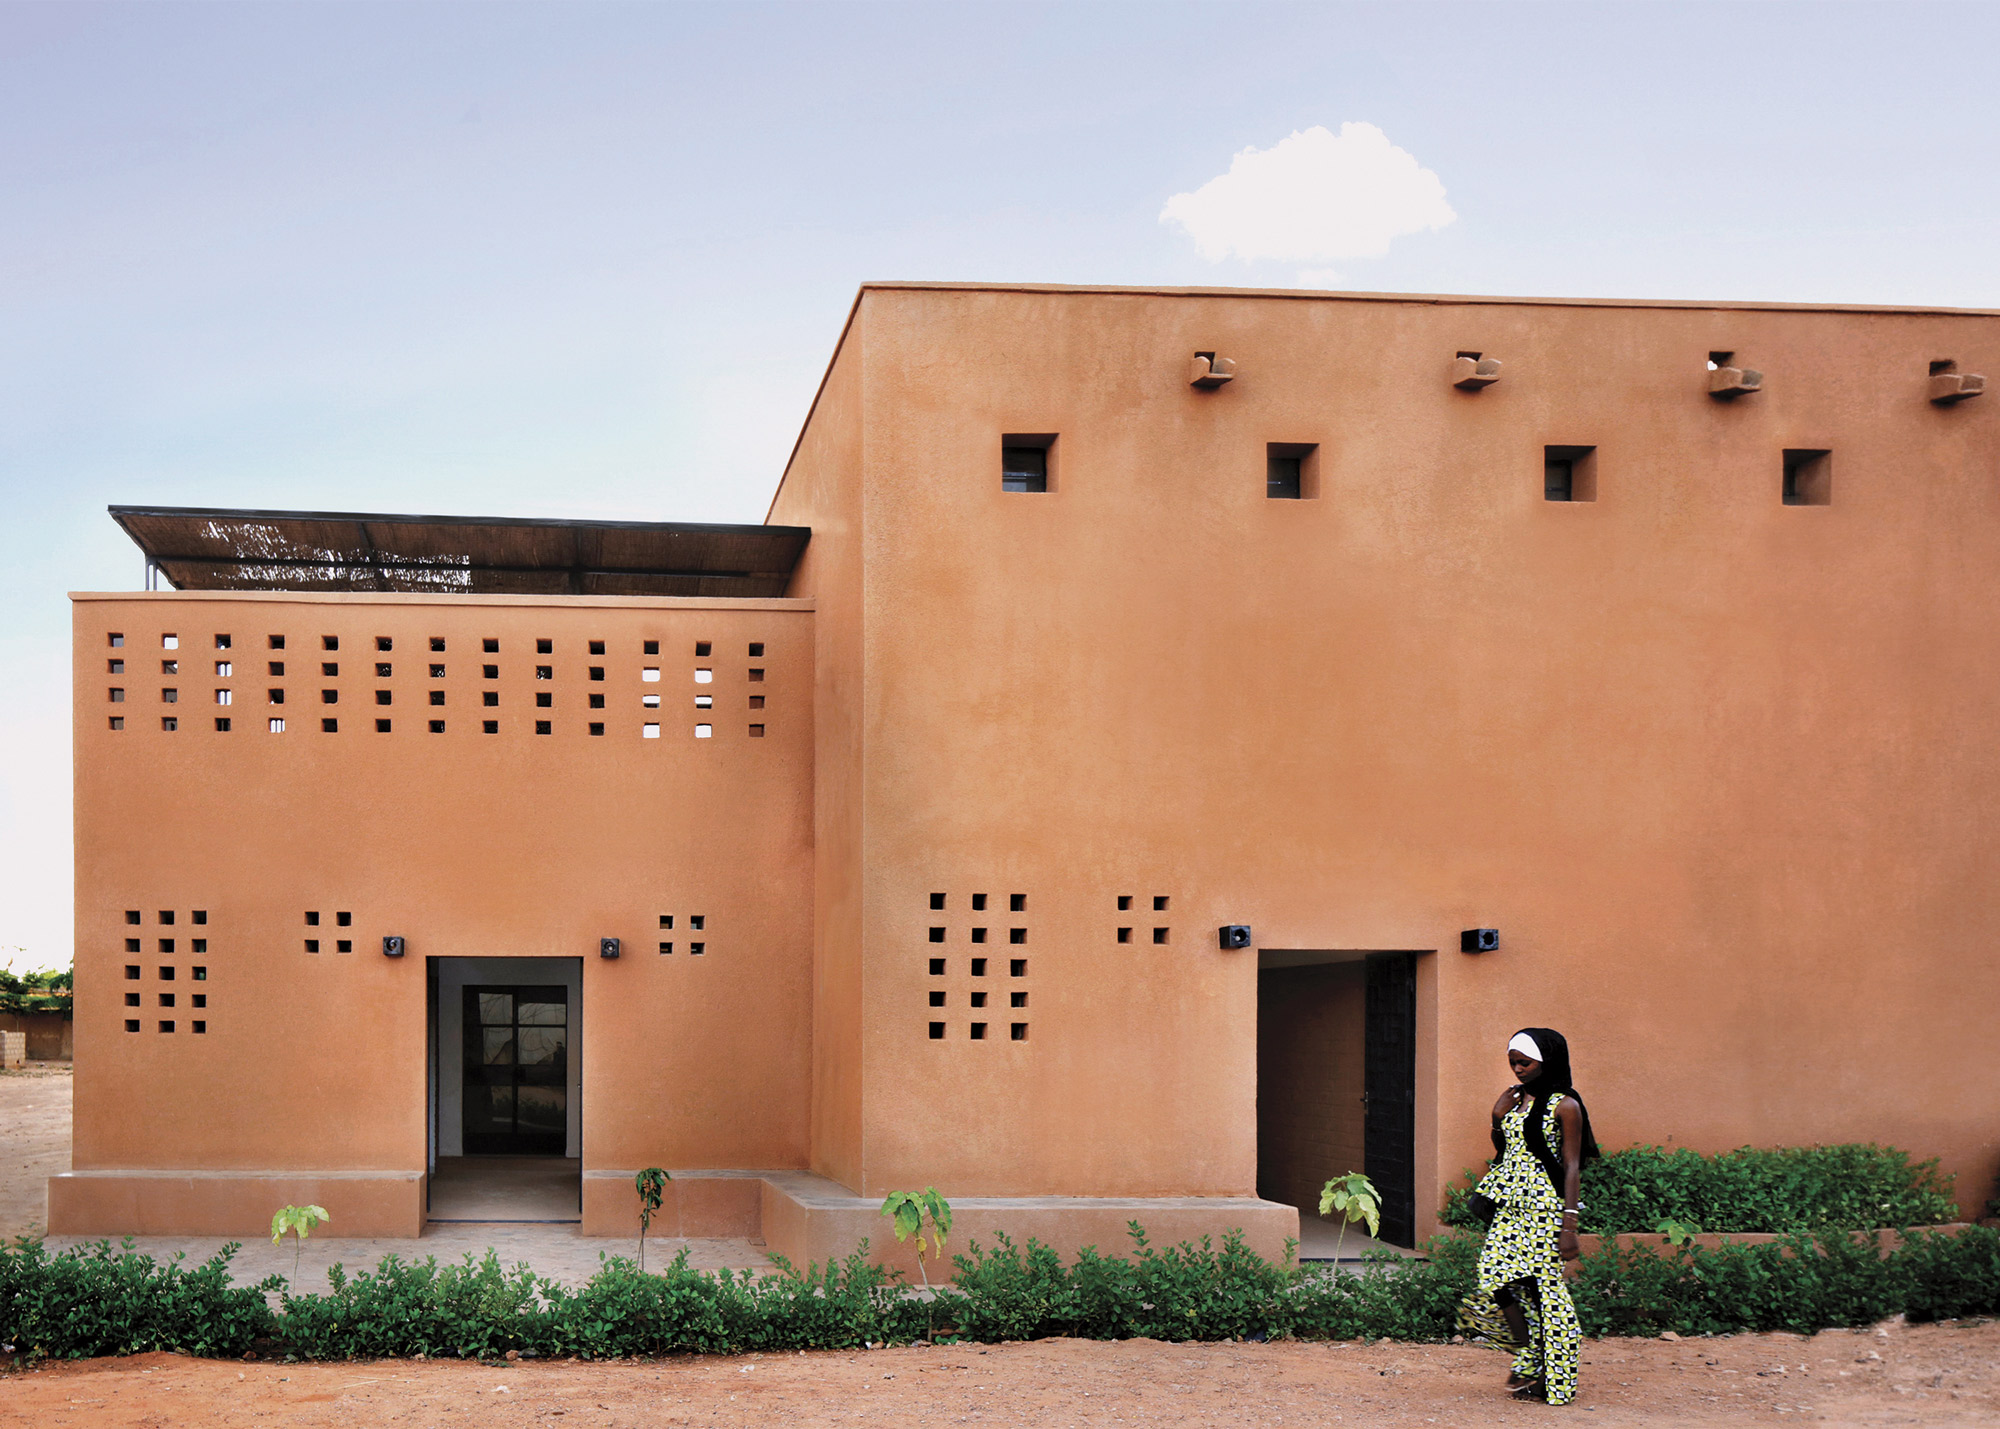 Rolex Mentor &Protégé Collaborative project by Mariam Kamara in a residential area of Niamey, Niger